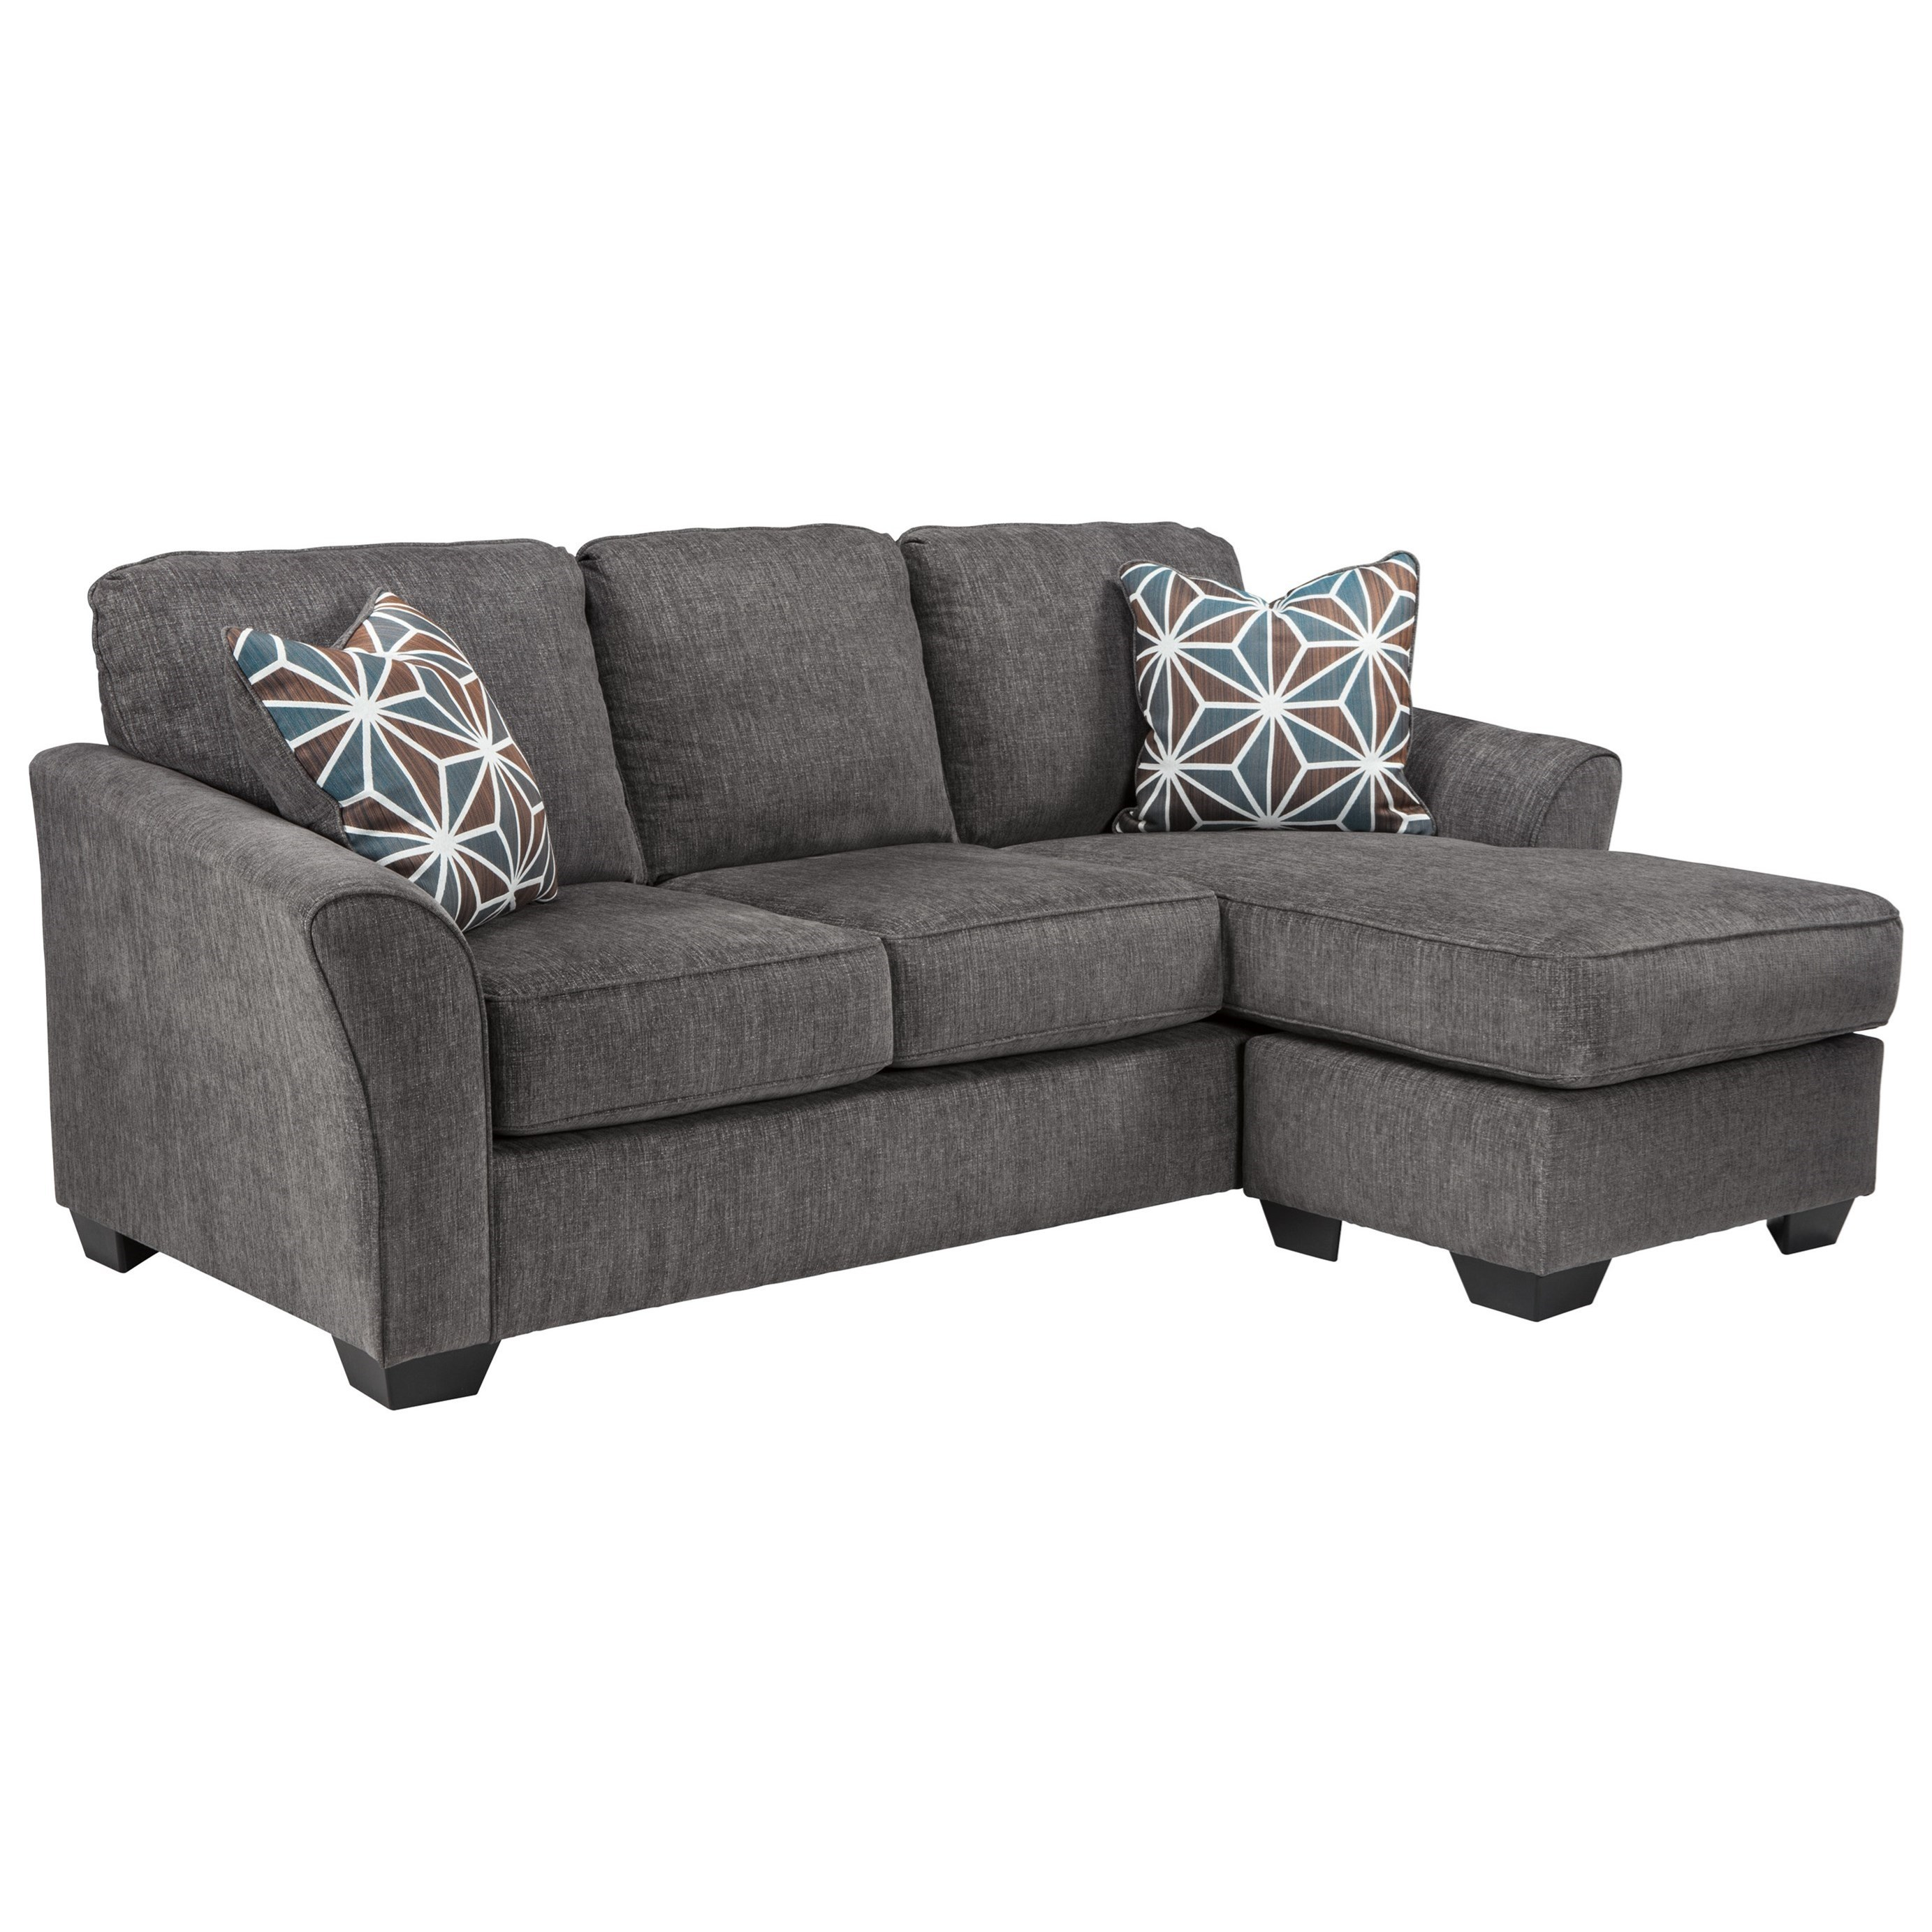 Casual Contemporary Sofa Chaise